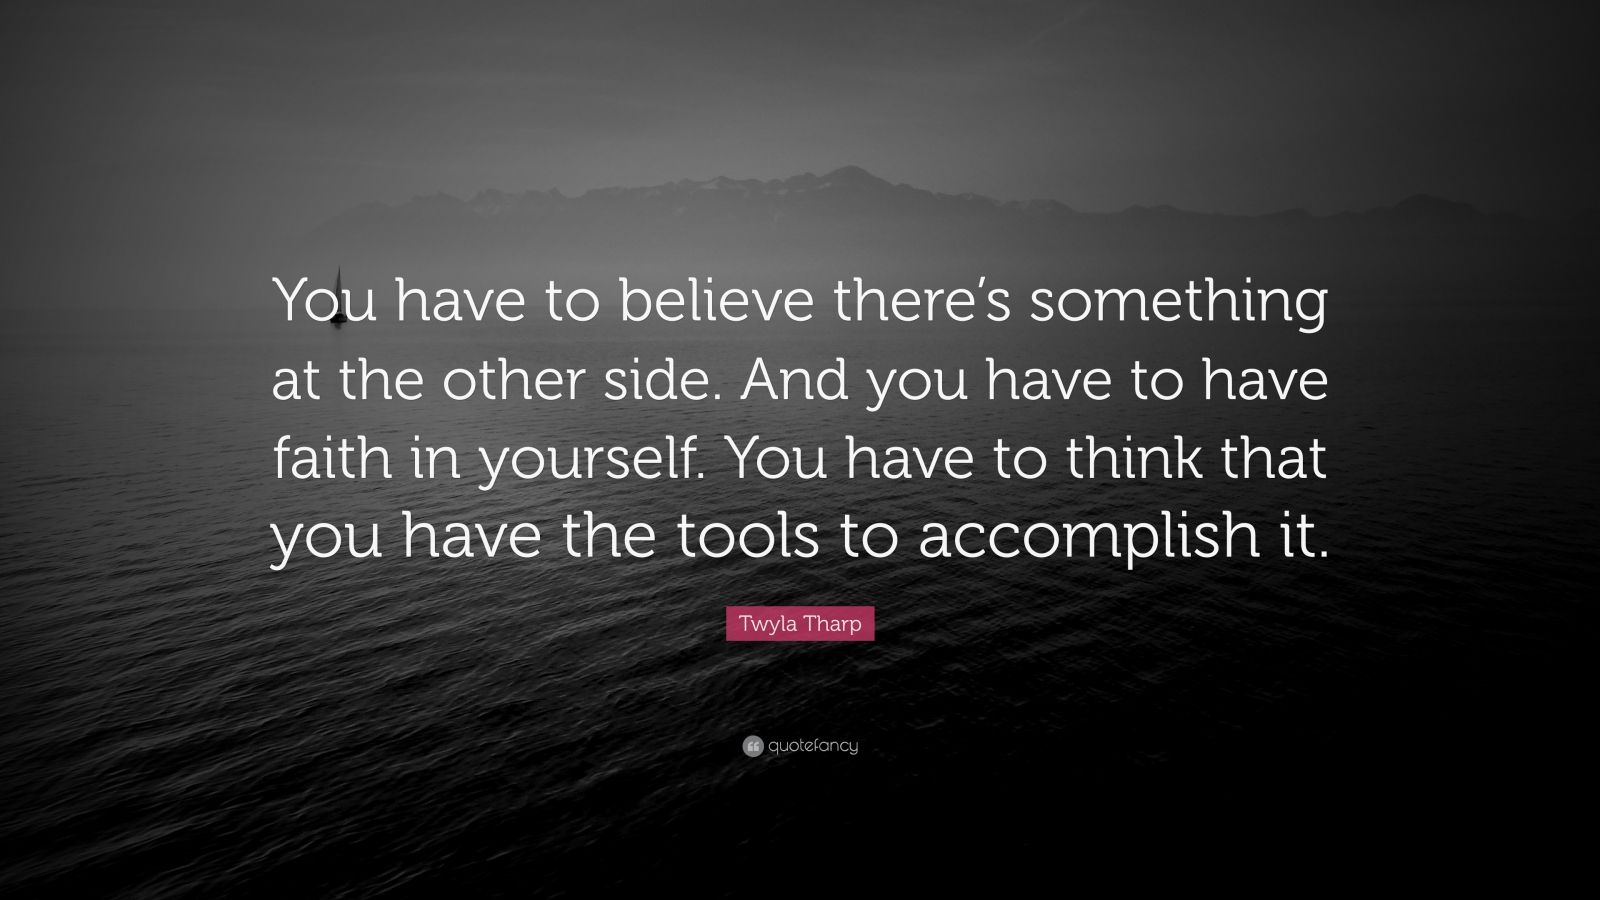 """Twyla Tharp Quote: """"You have to believe there's something at the other side. And you have to have faith in yourself. You have to think that you have the tools to accomplish it."""""""